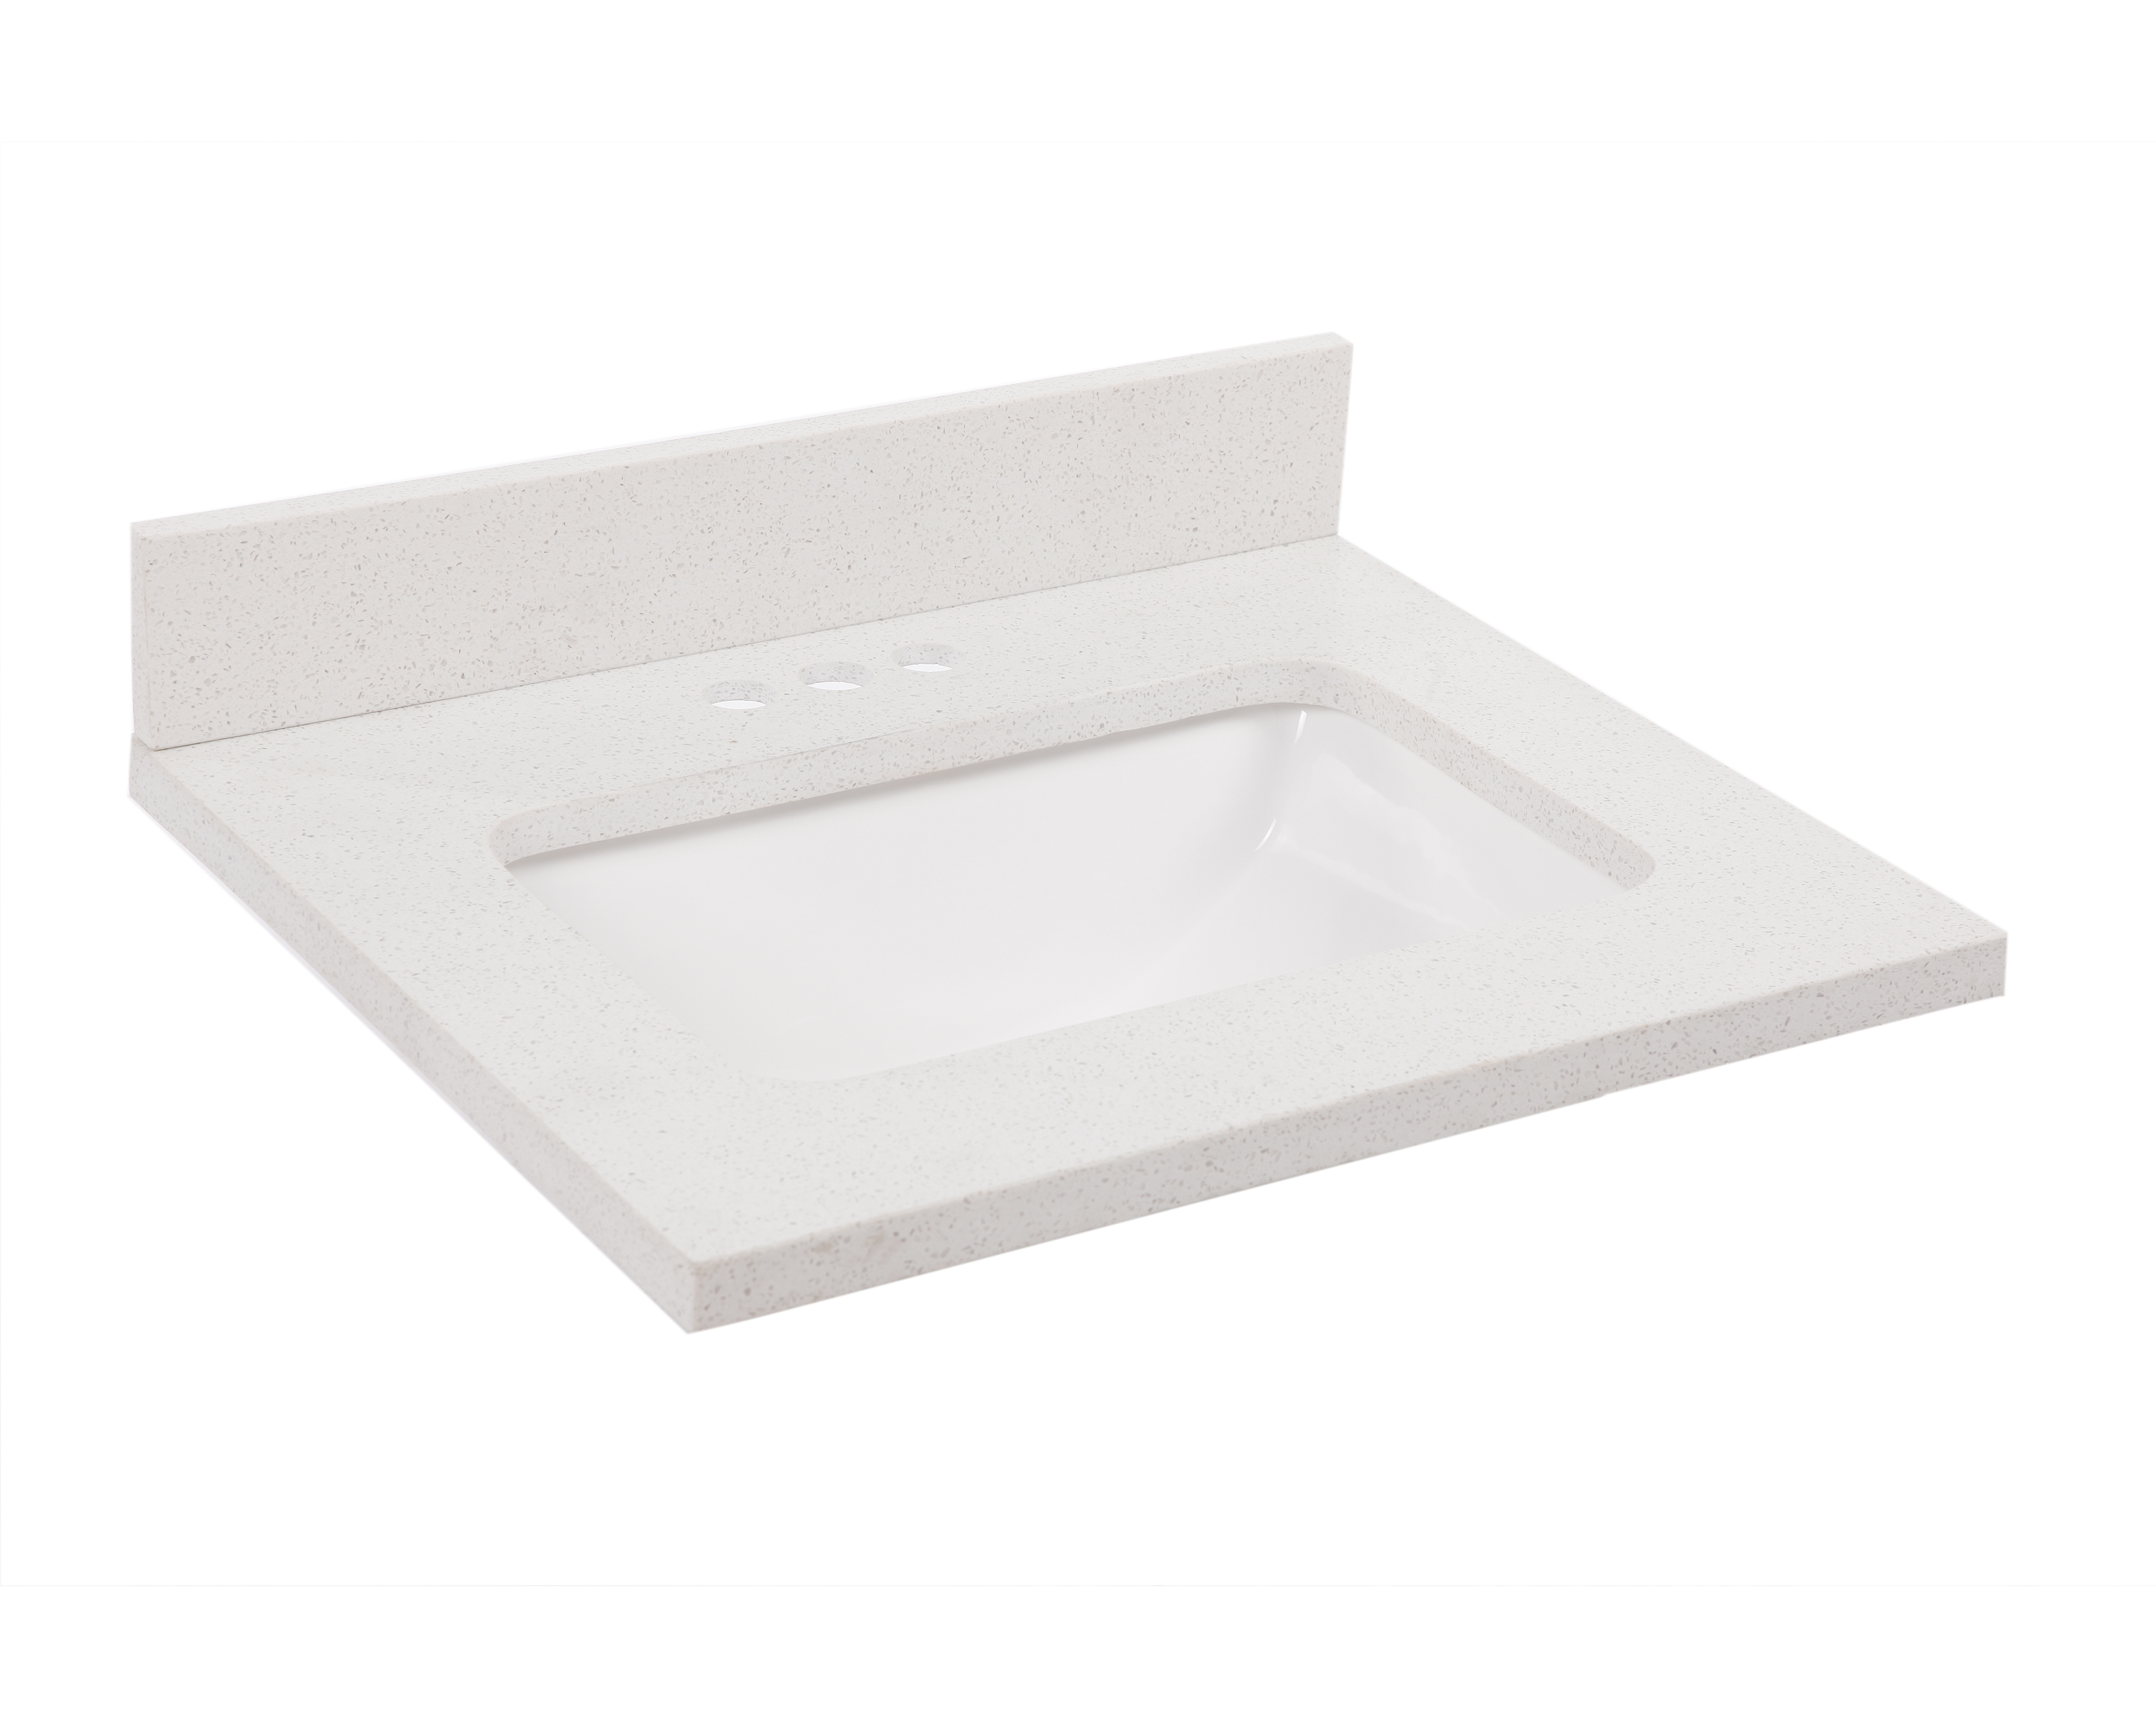 Quartz Single Bowl Vanity Top 49x22, Snowdrift #563601